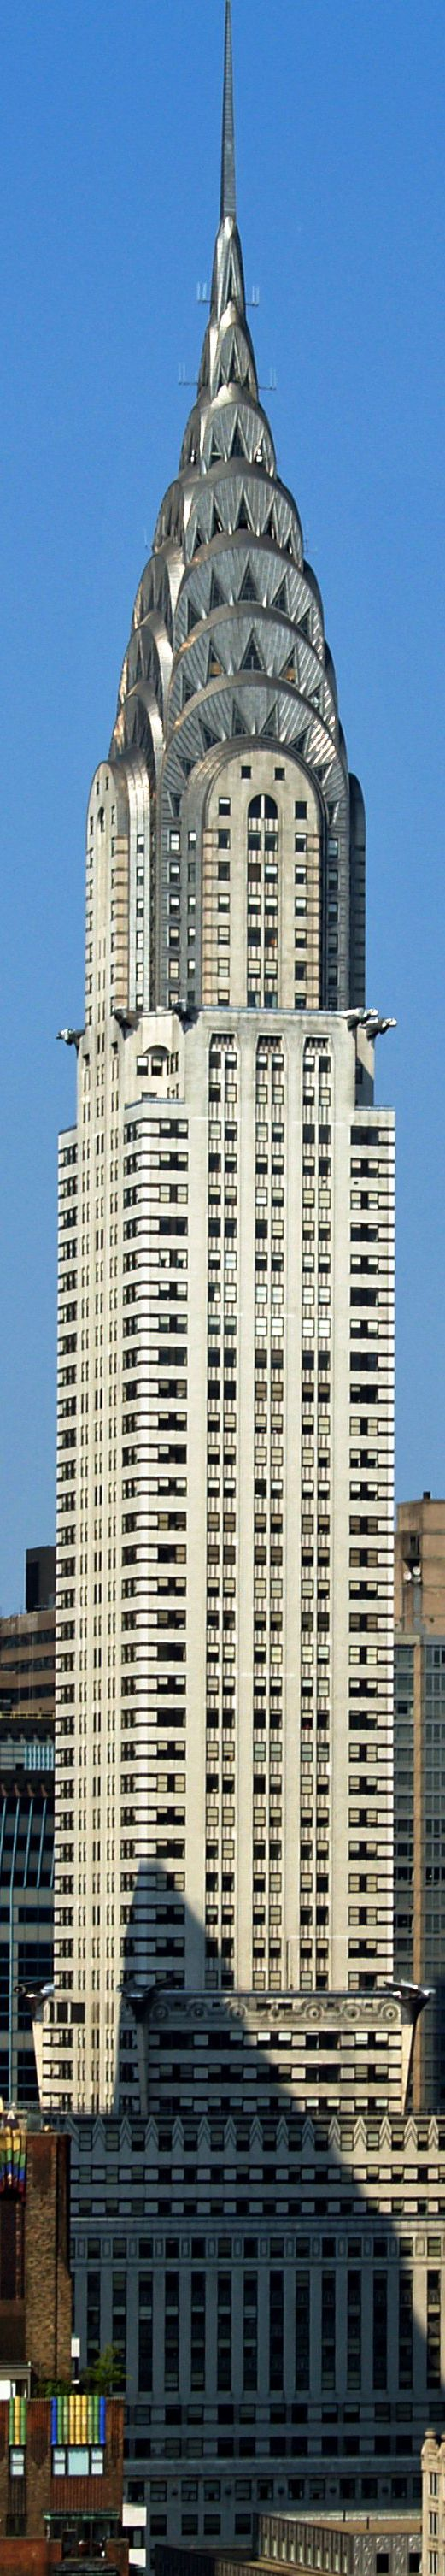 The most beautiful building in NY  Rent-Direct.com - No Fee Apts in NY.